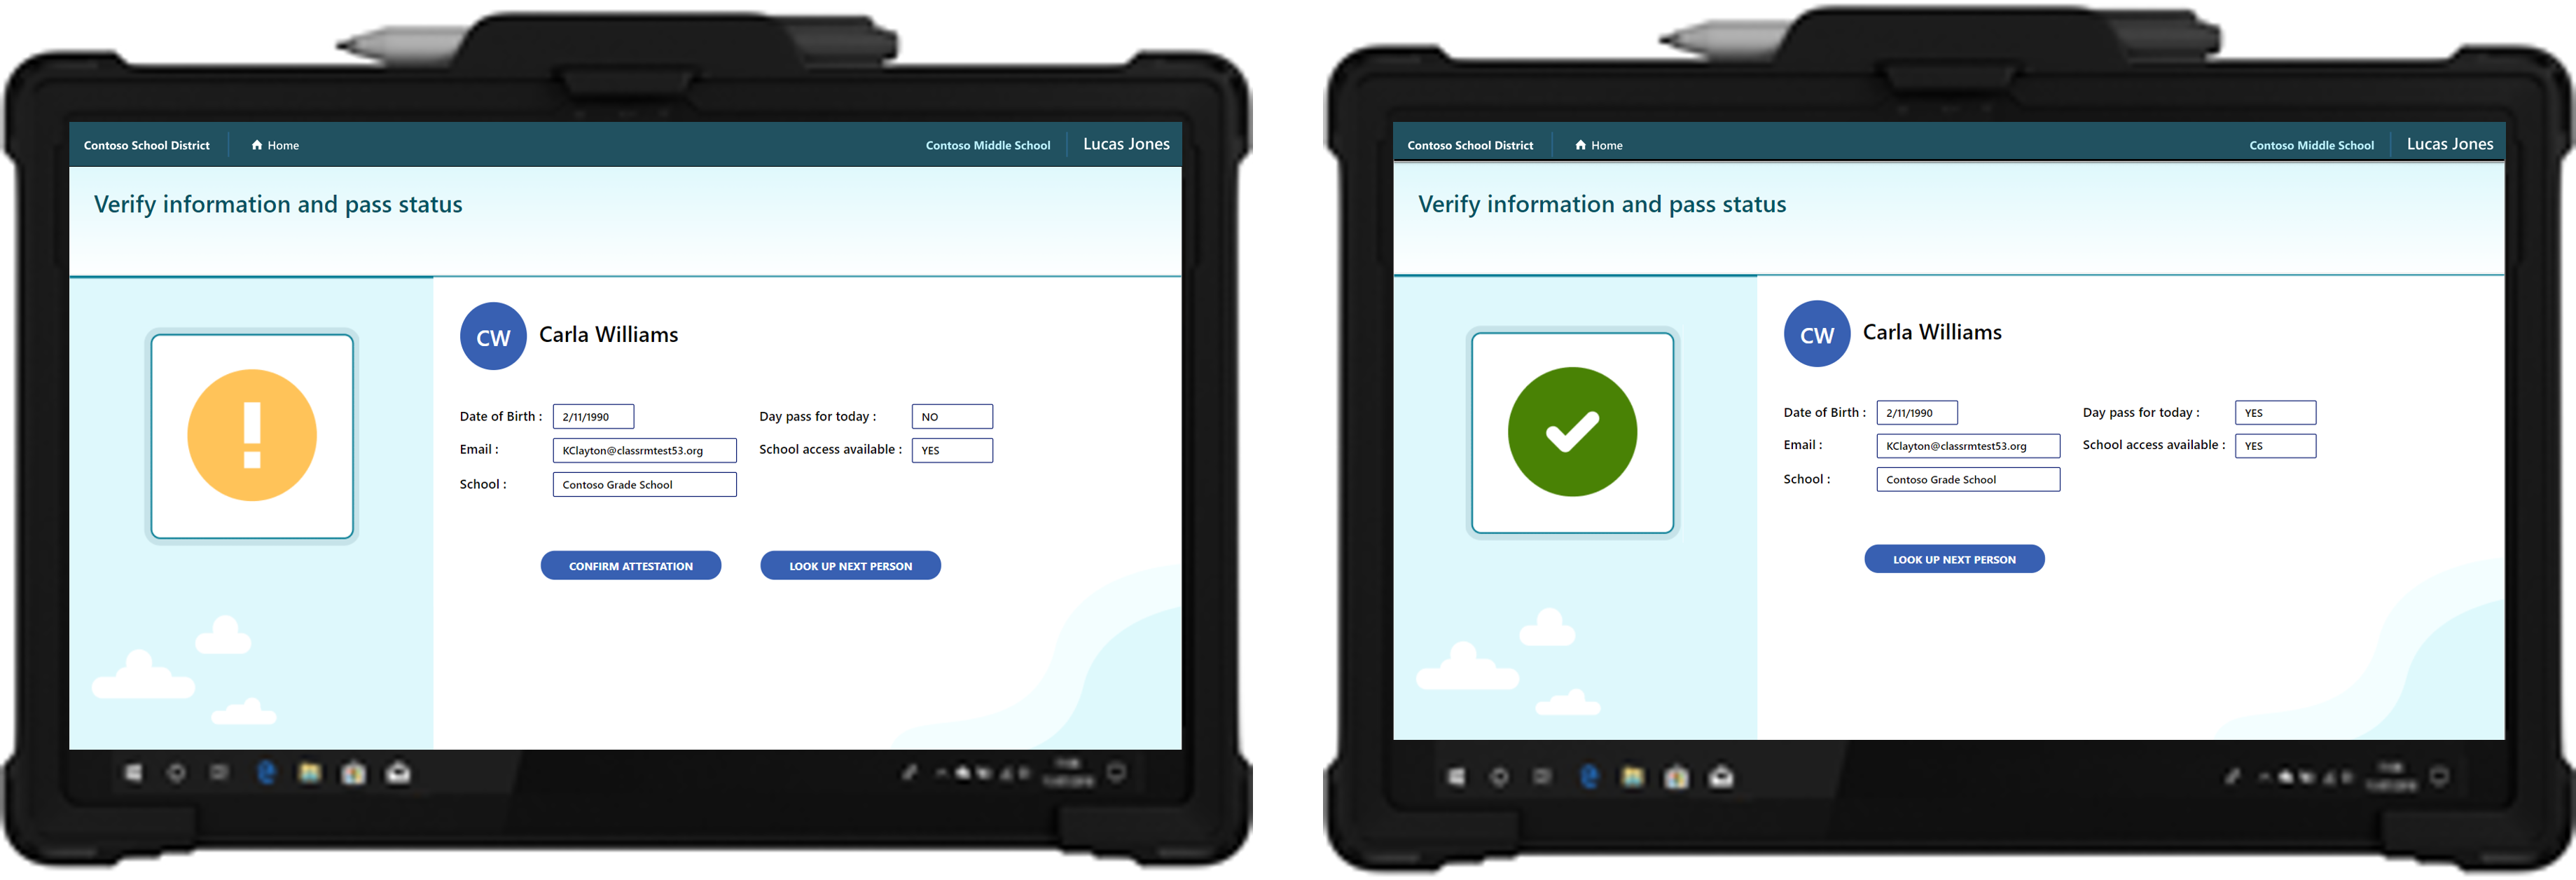 For students without a device or a day pass, school staff can review attestation with the student or their guardian and create a daily pass for the student.